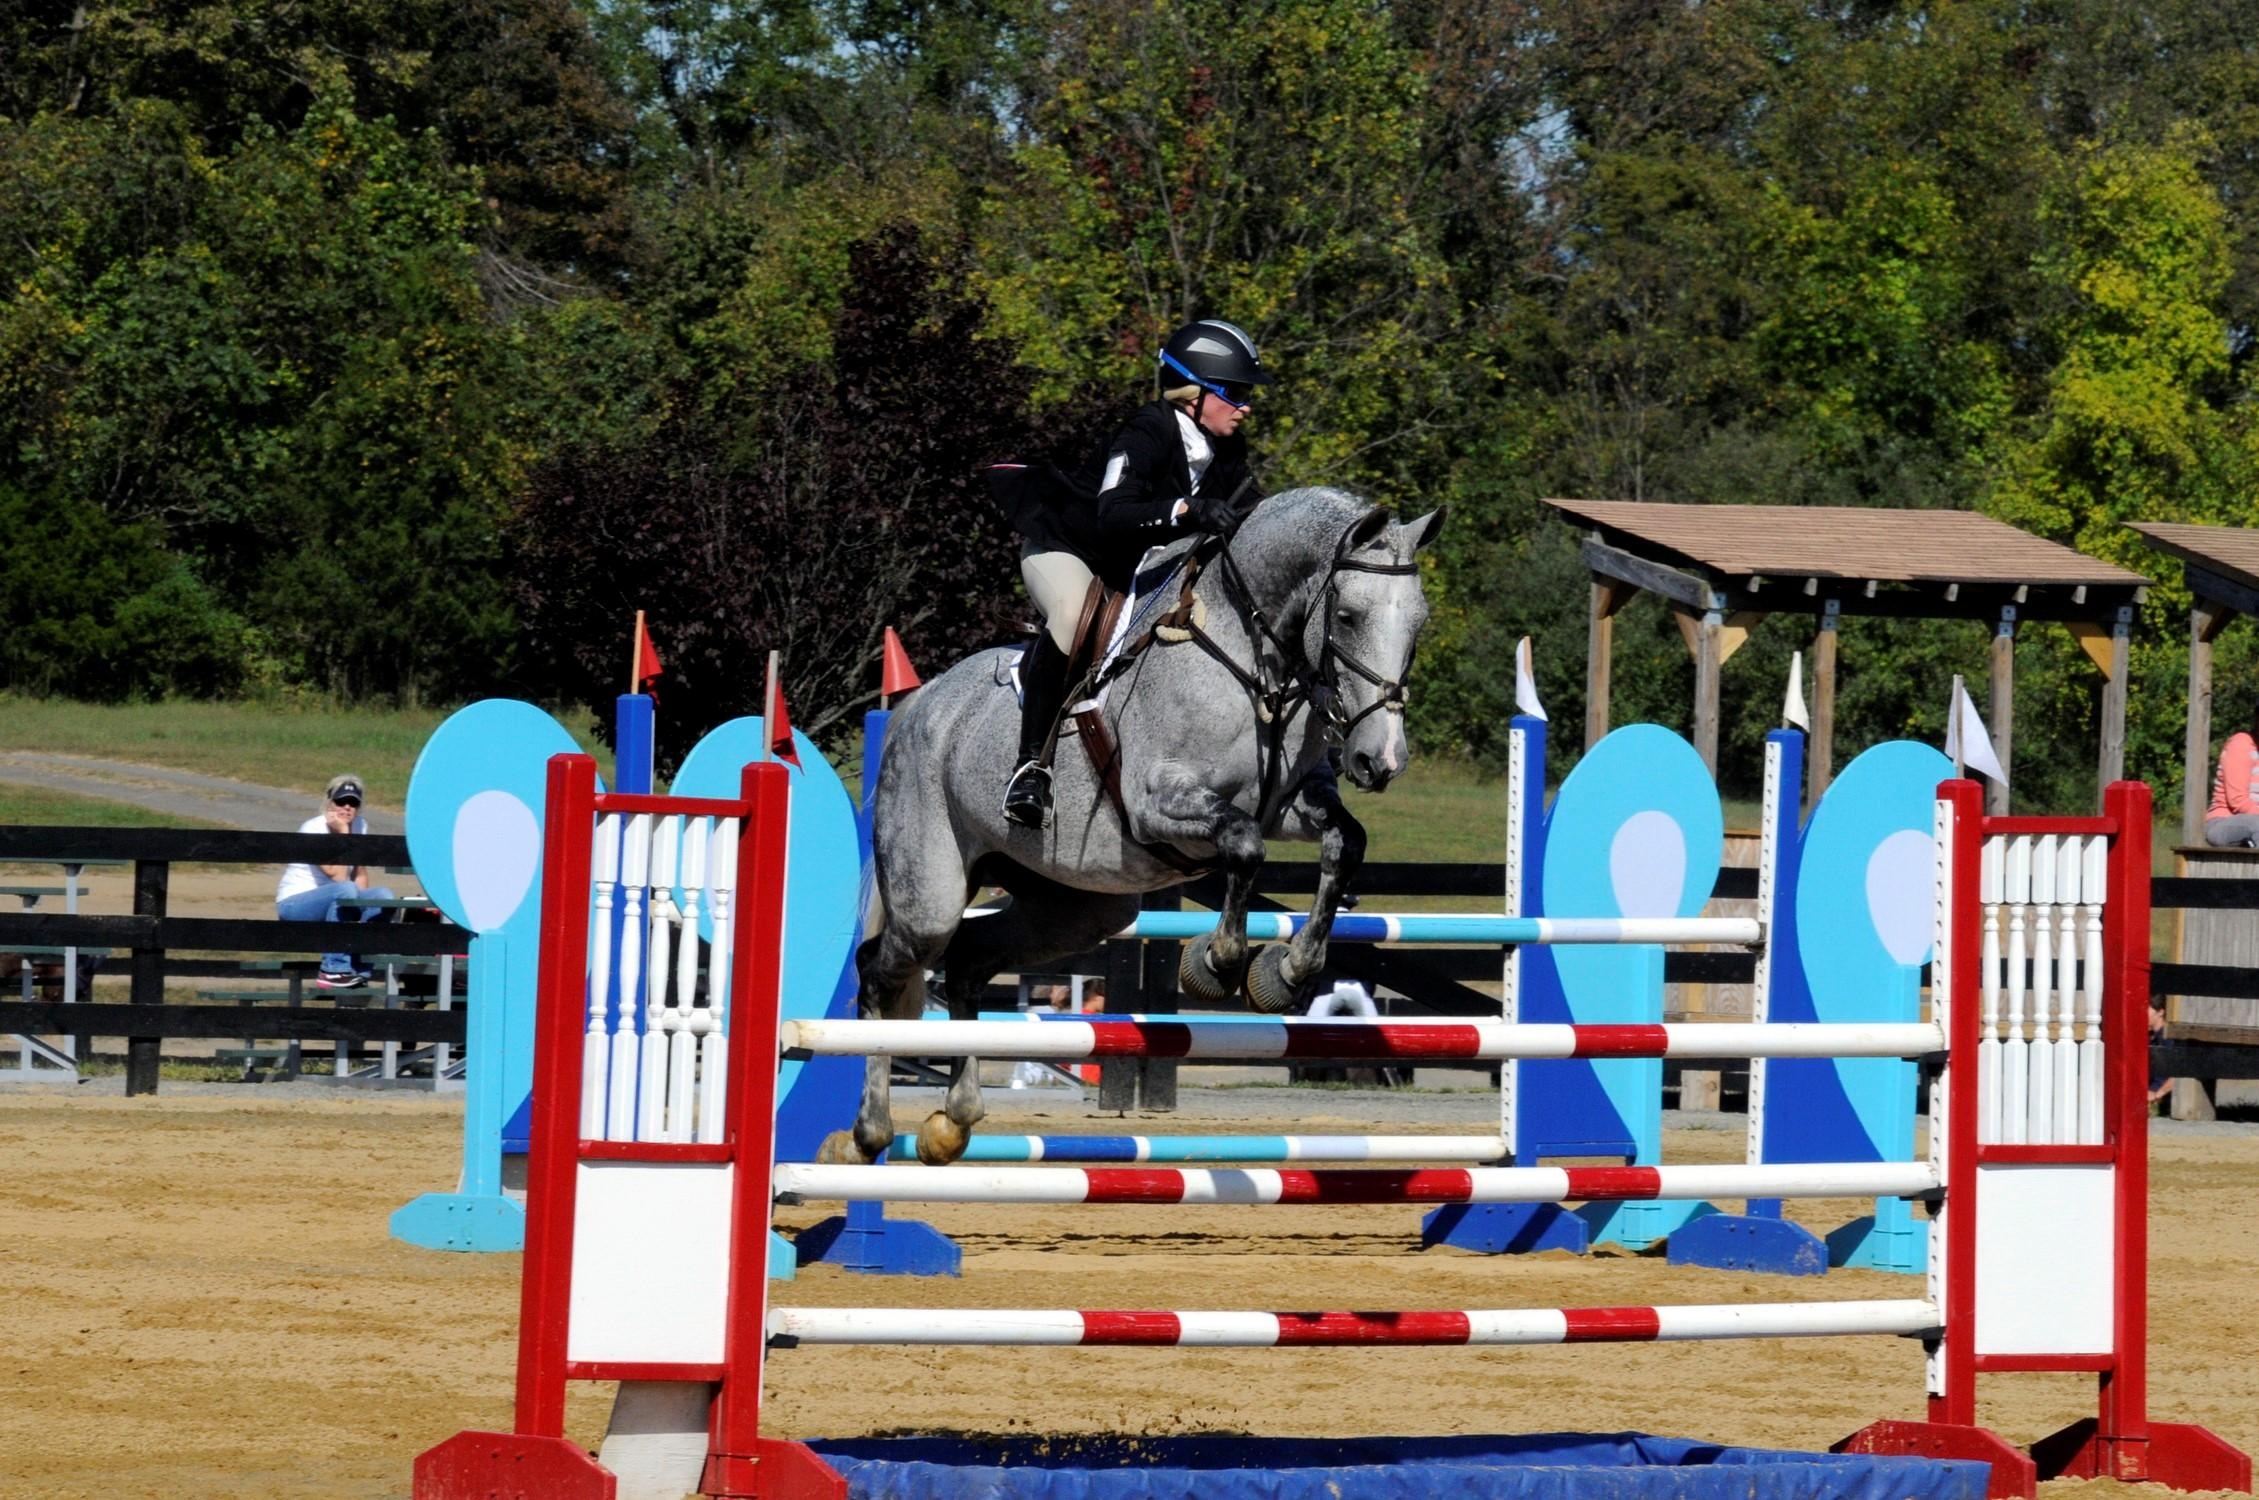 Rain Dancer Show Jumping Picture 1.jpg